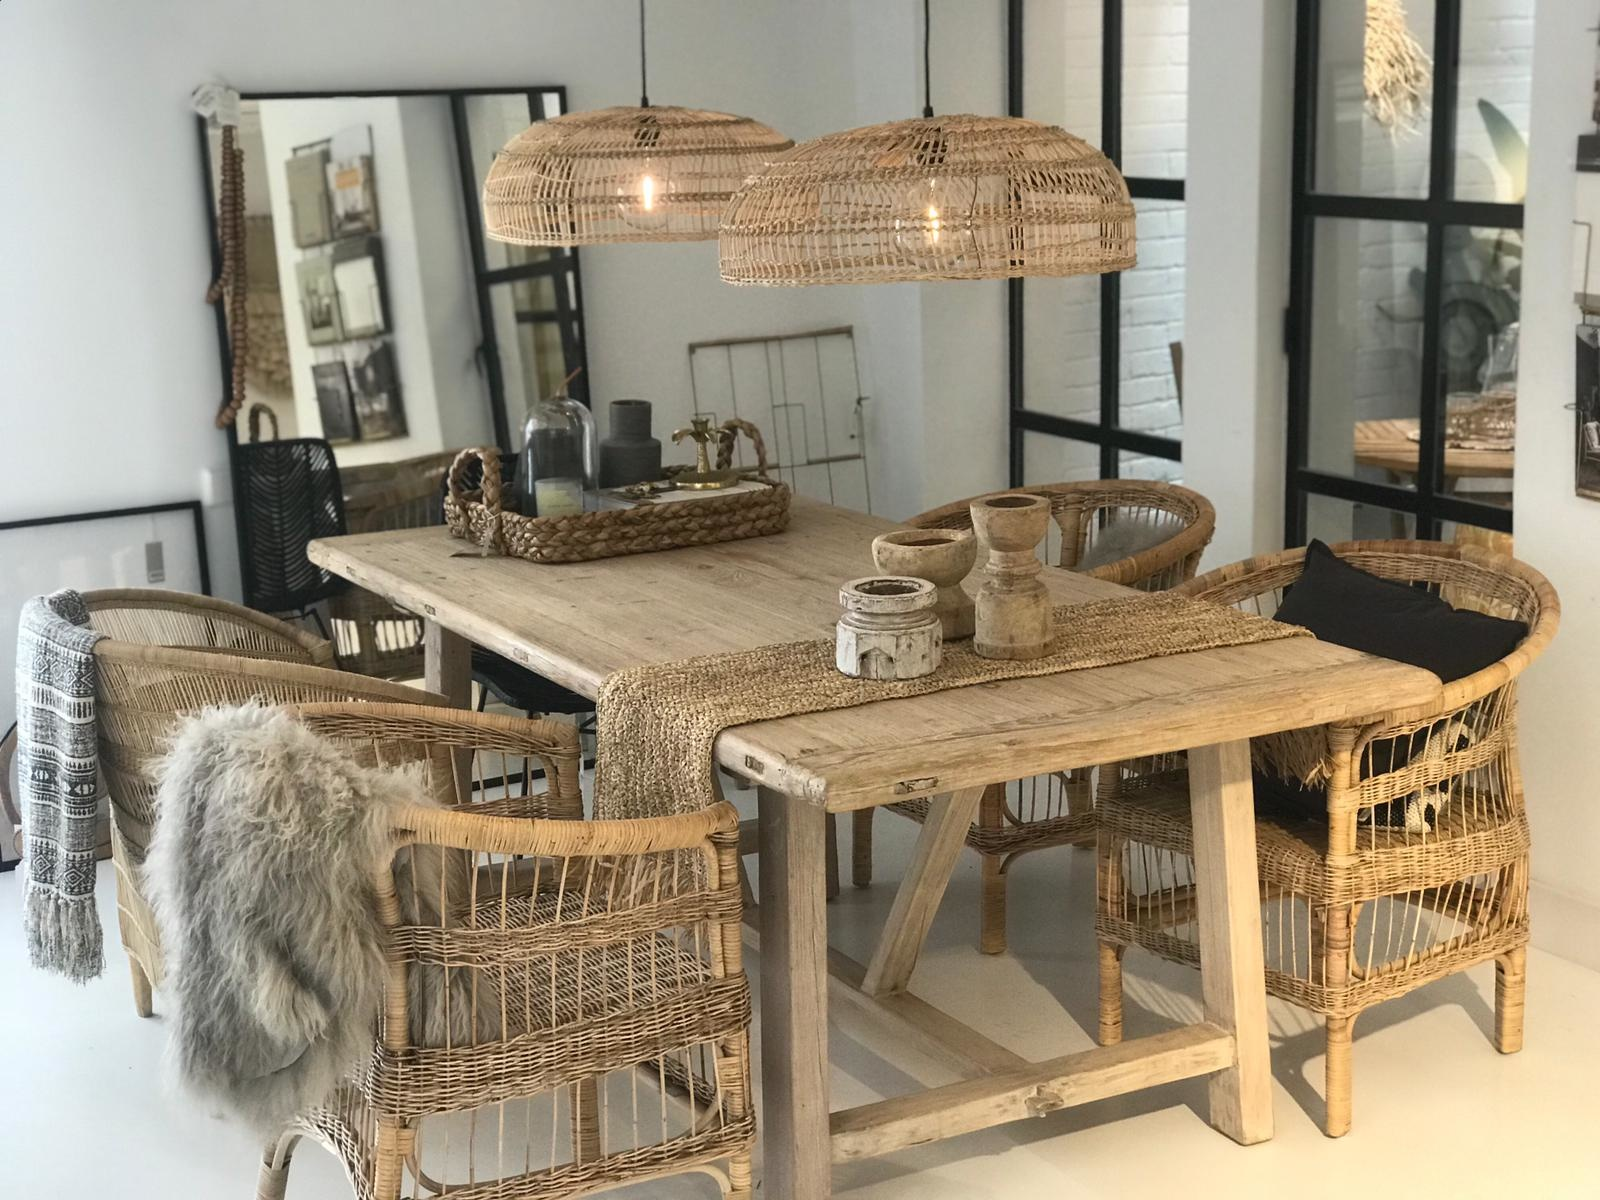 Snowdrops Copenhagen Dining room table recycled pine wood - 240x100xh78H - unique item